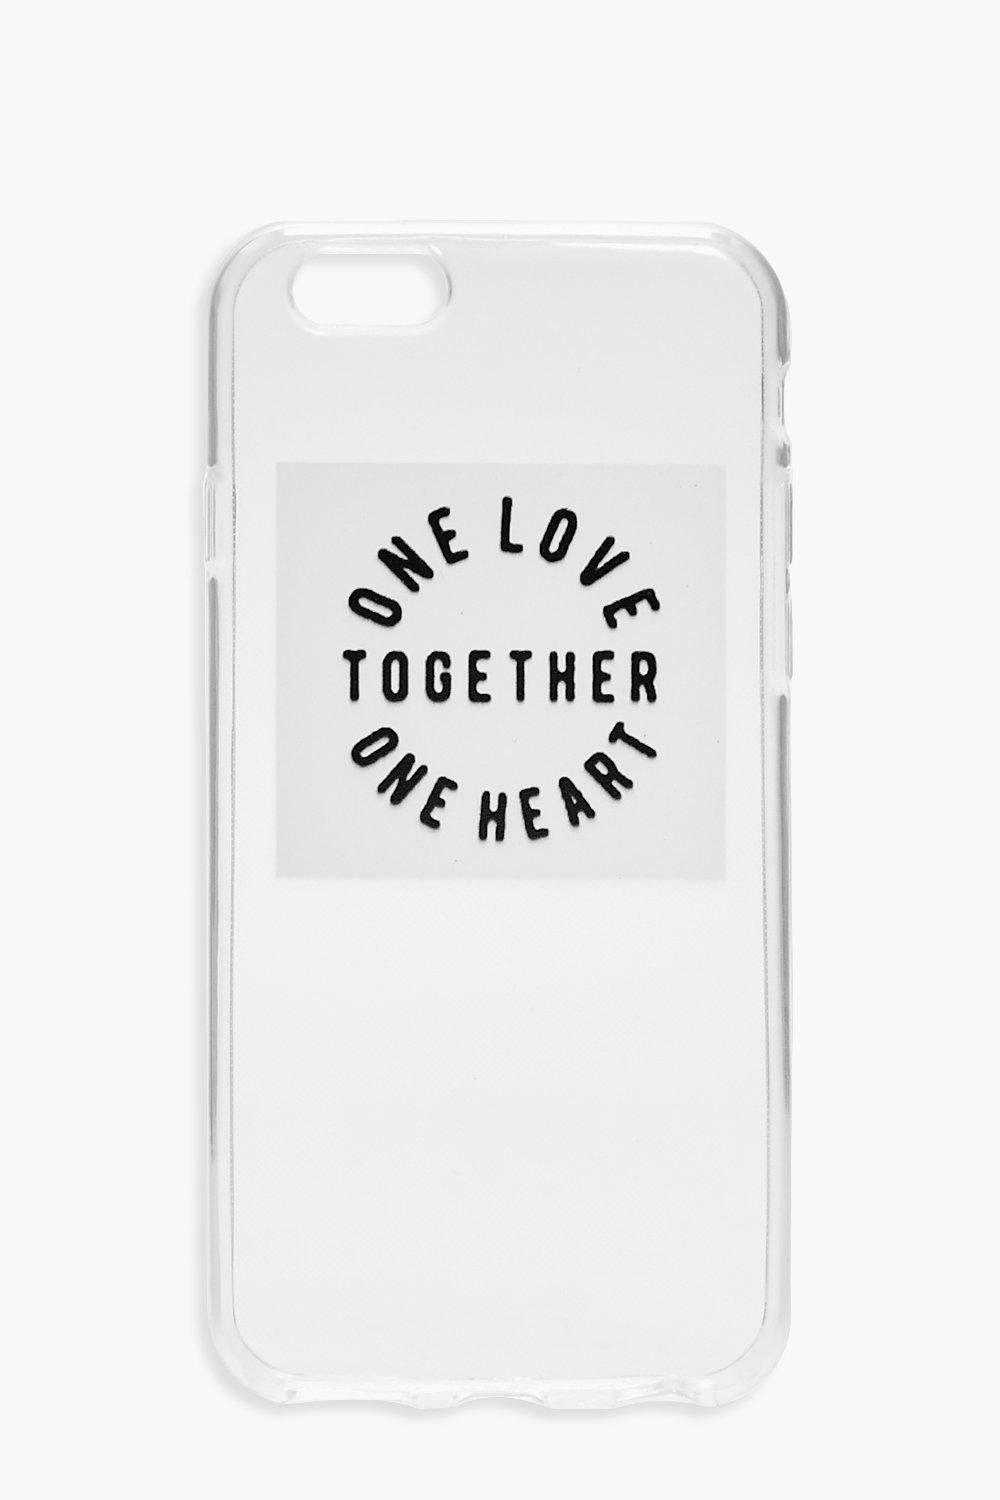 iPhone 6 Case - Together - white - Charity iPhone